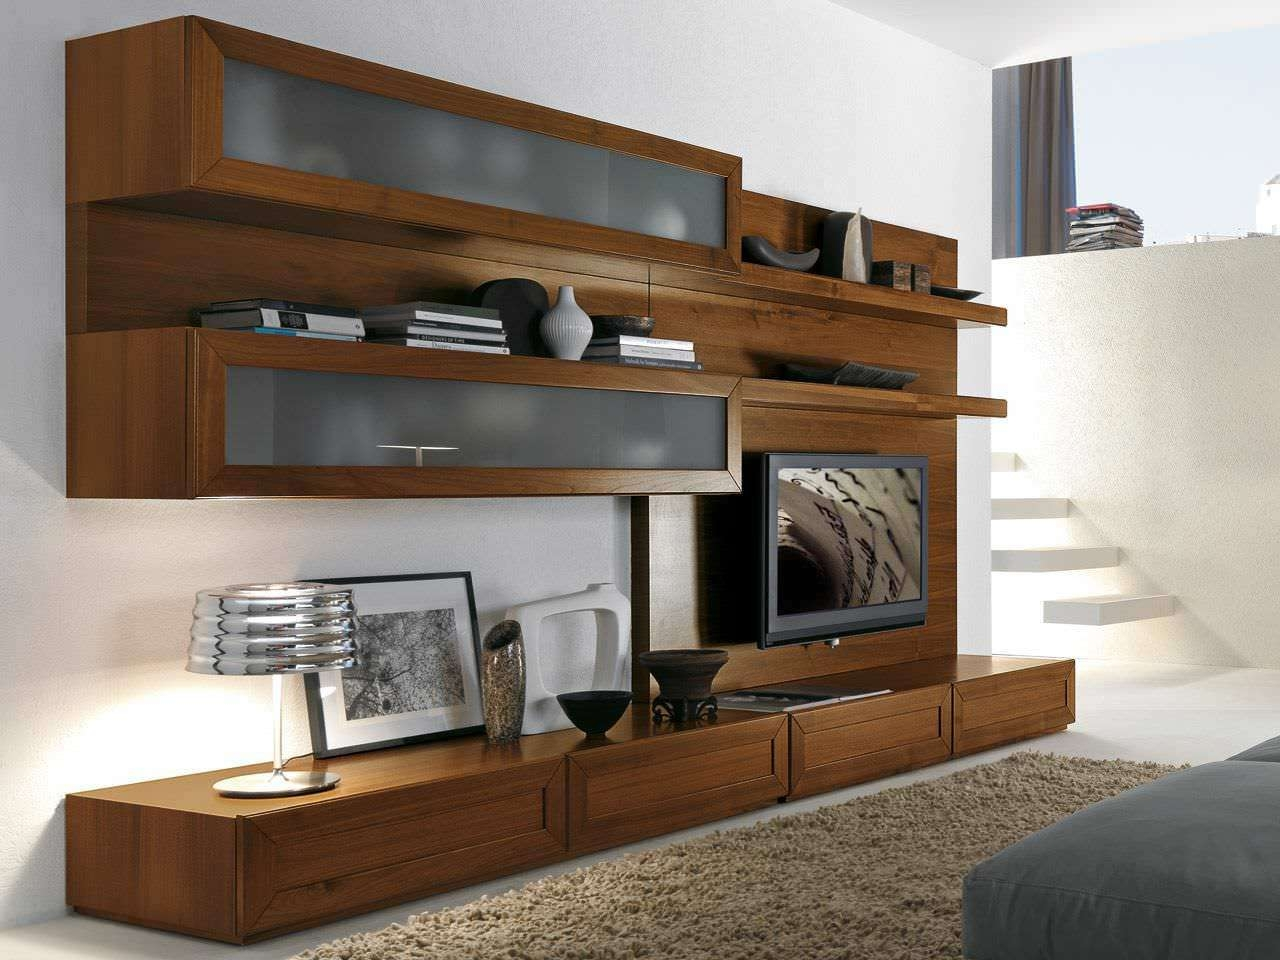 Tv Wall Units Cabinets – Wall Units Design Ideas : Electoral7 Pertaining To Tv Cabinets And Wall Units (View 4 of 20)